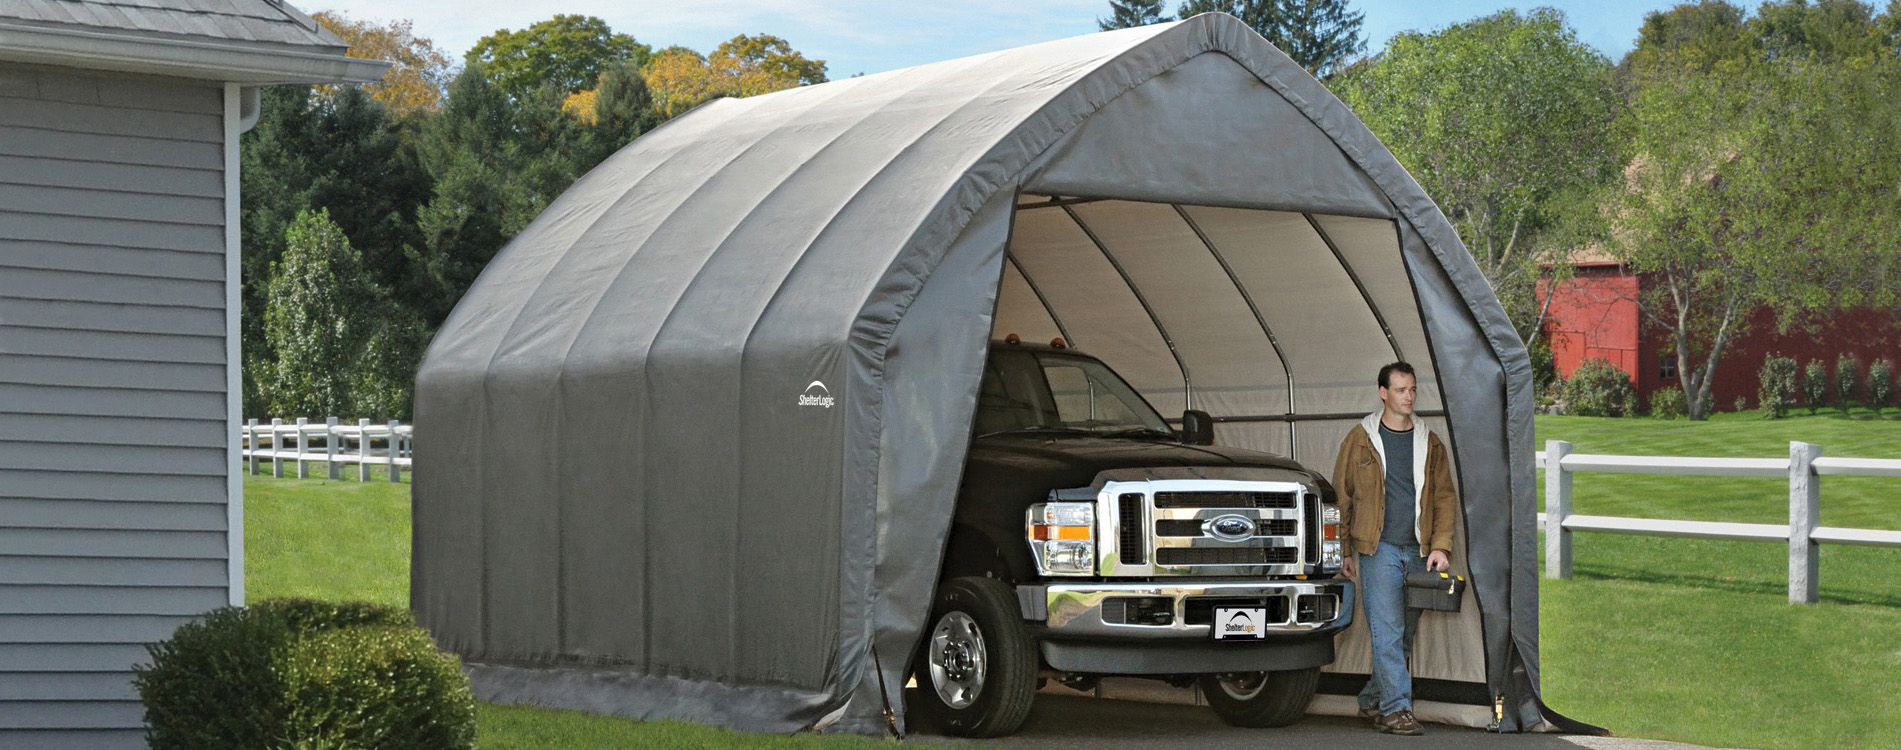 Alpine SUV/Truck Shelter & Shelters of New England portable garages carports and canopies ...